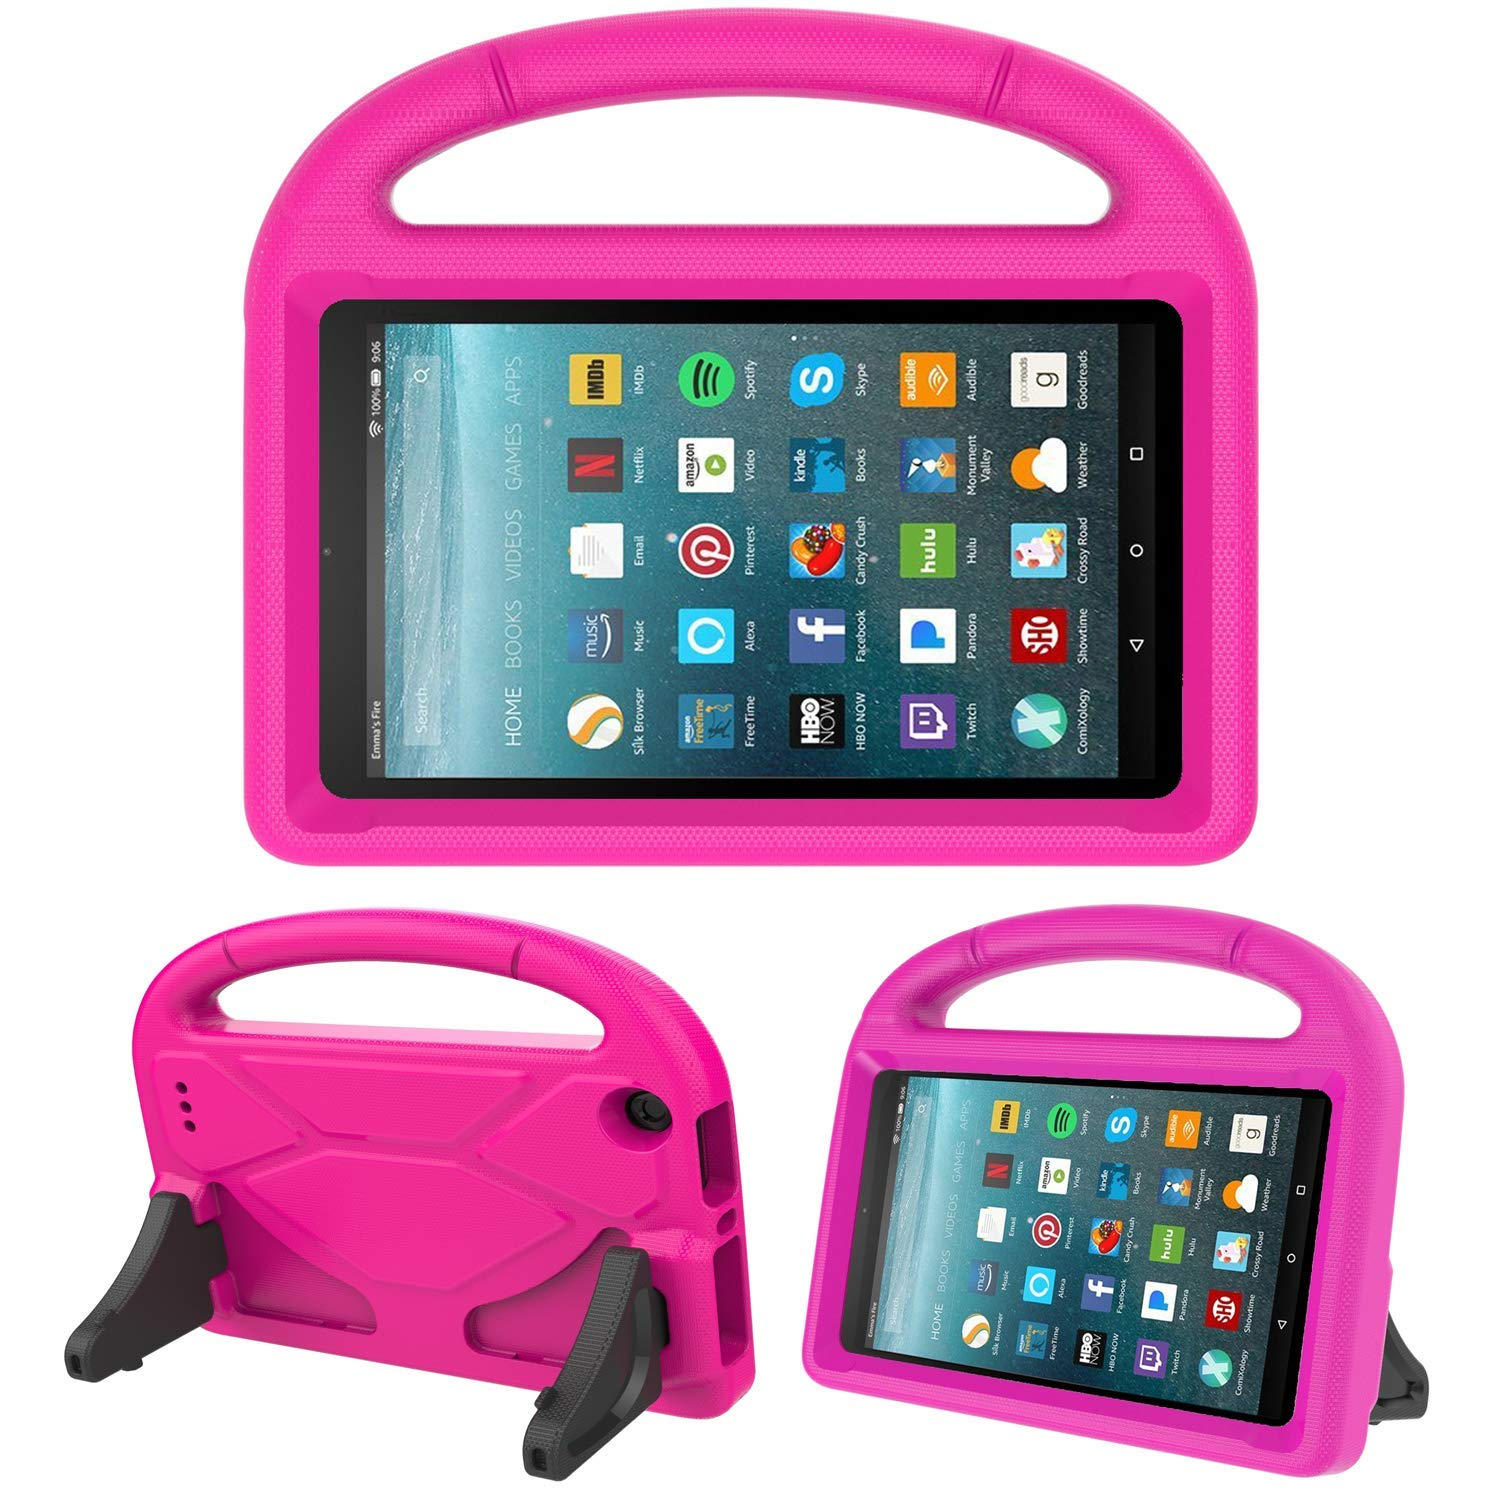 Kids Case for New Fire 7inch - Allytech Light Weight Shock Proof Handle Kid Proof Cover Child Case for Amazon Fire 7 Tablet (5th Generation, 2015 Release and 7th Generation, 2017 Release) - Rose